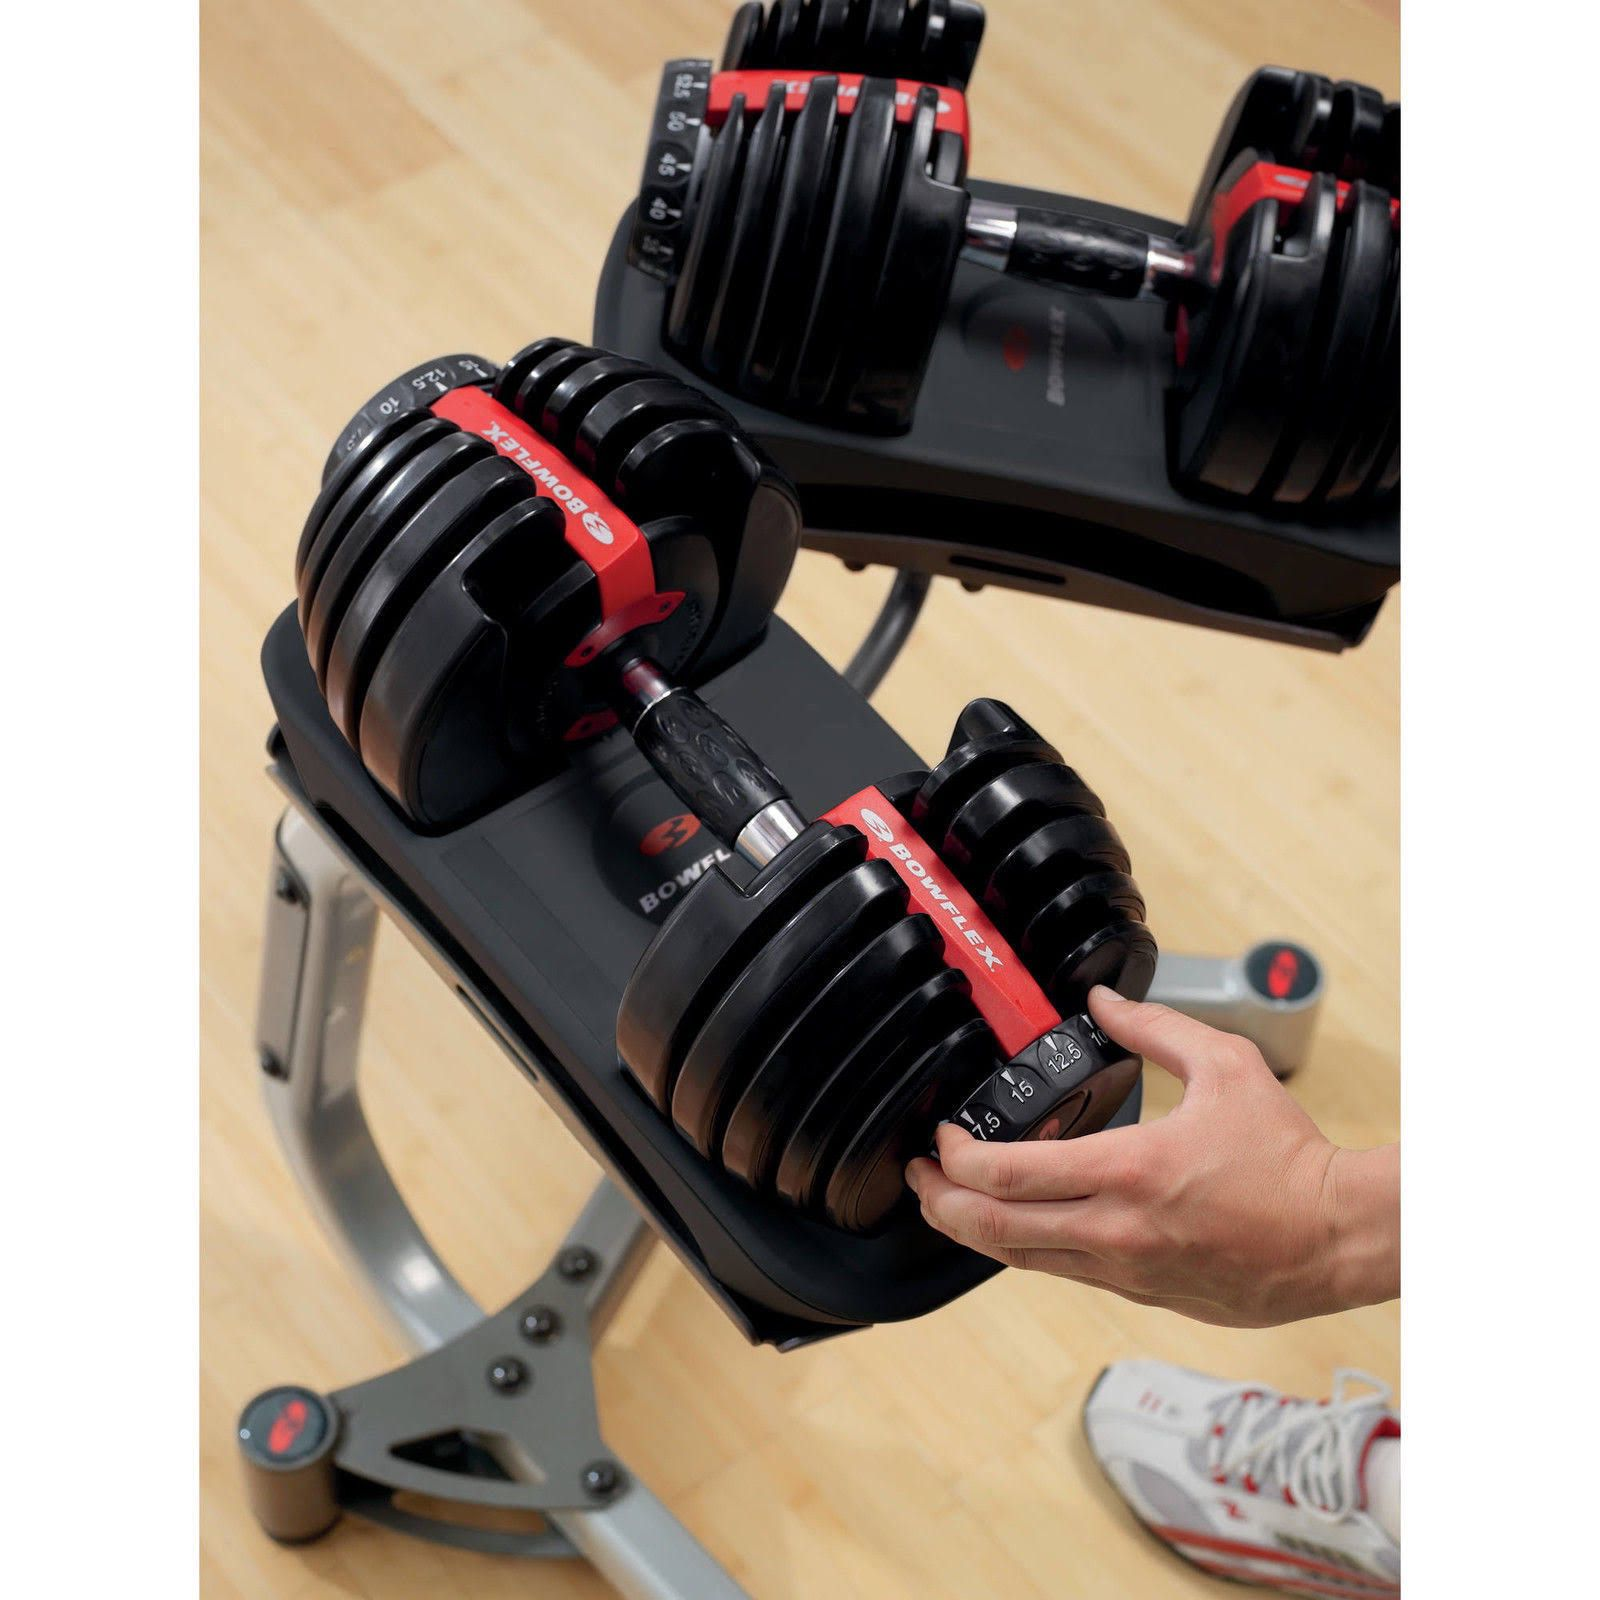 New Bowflex Weights 552 pair complete set Sealed Local Trusted